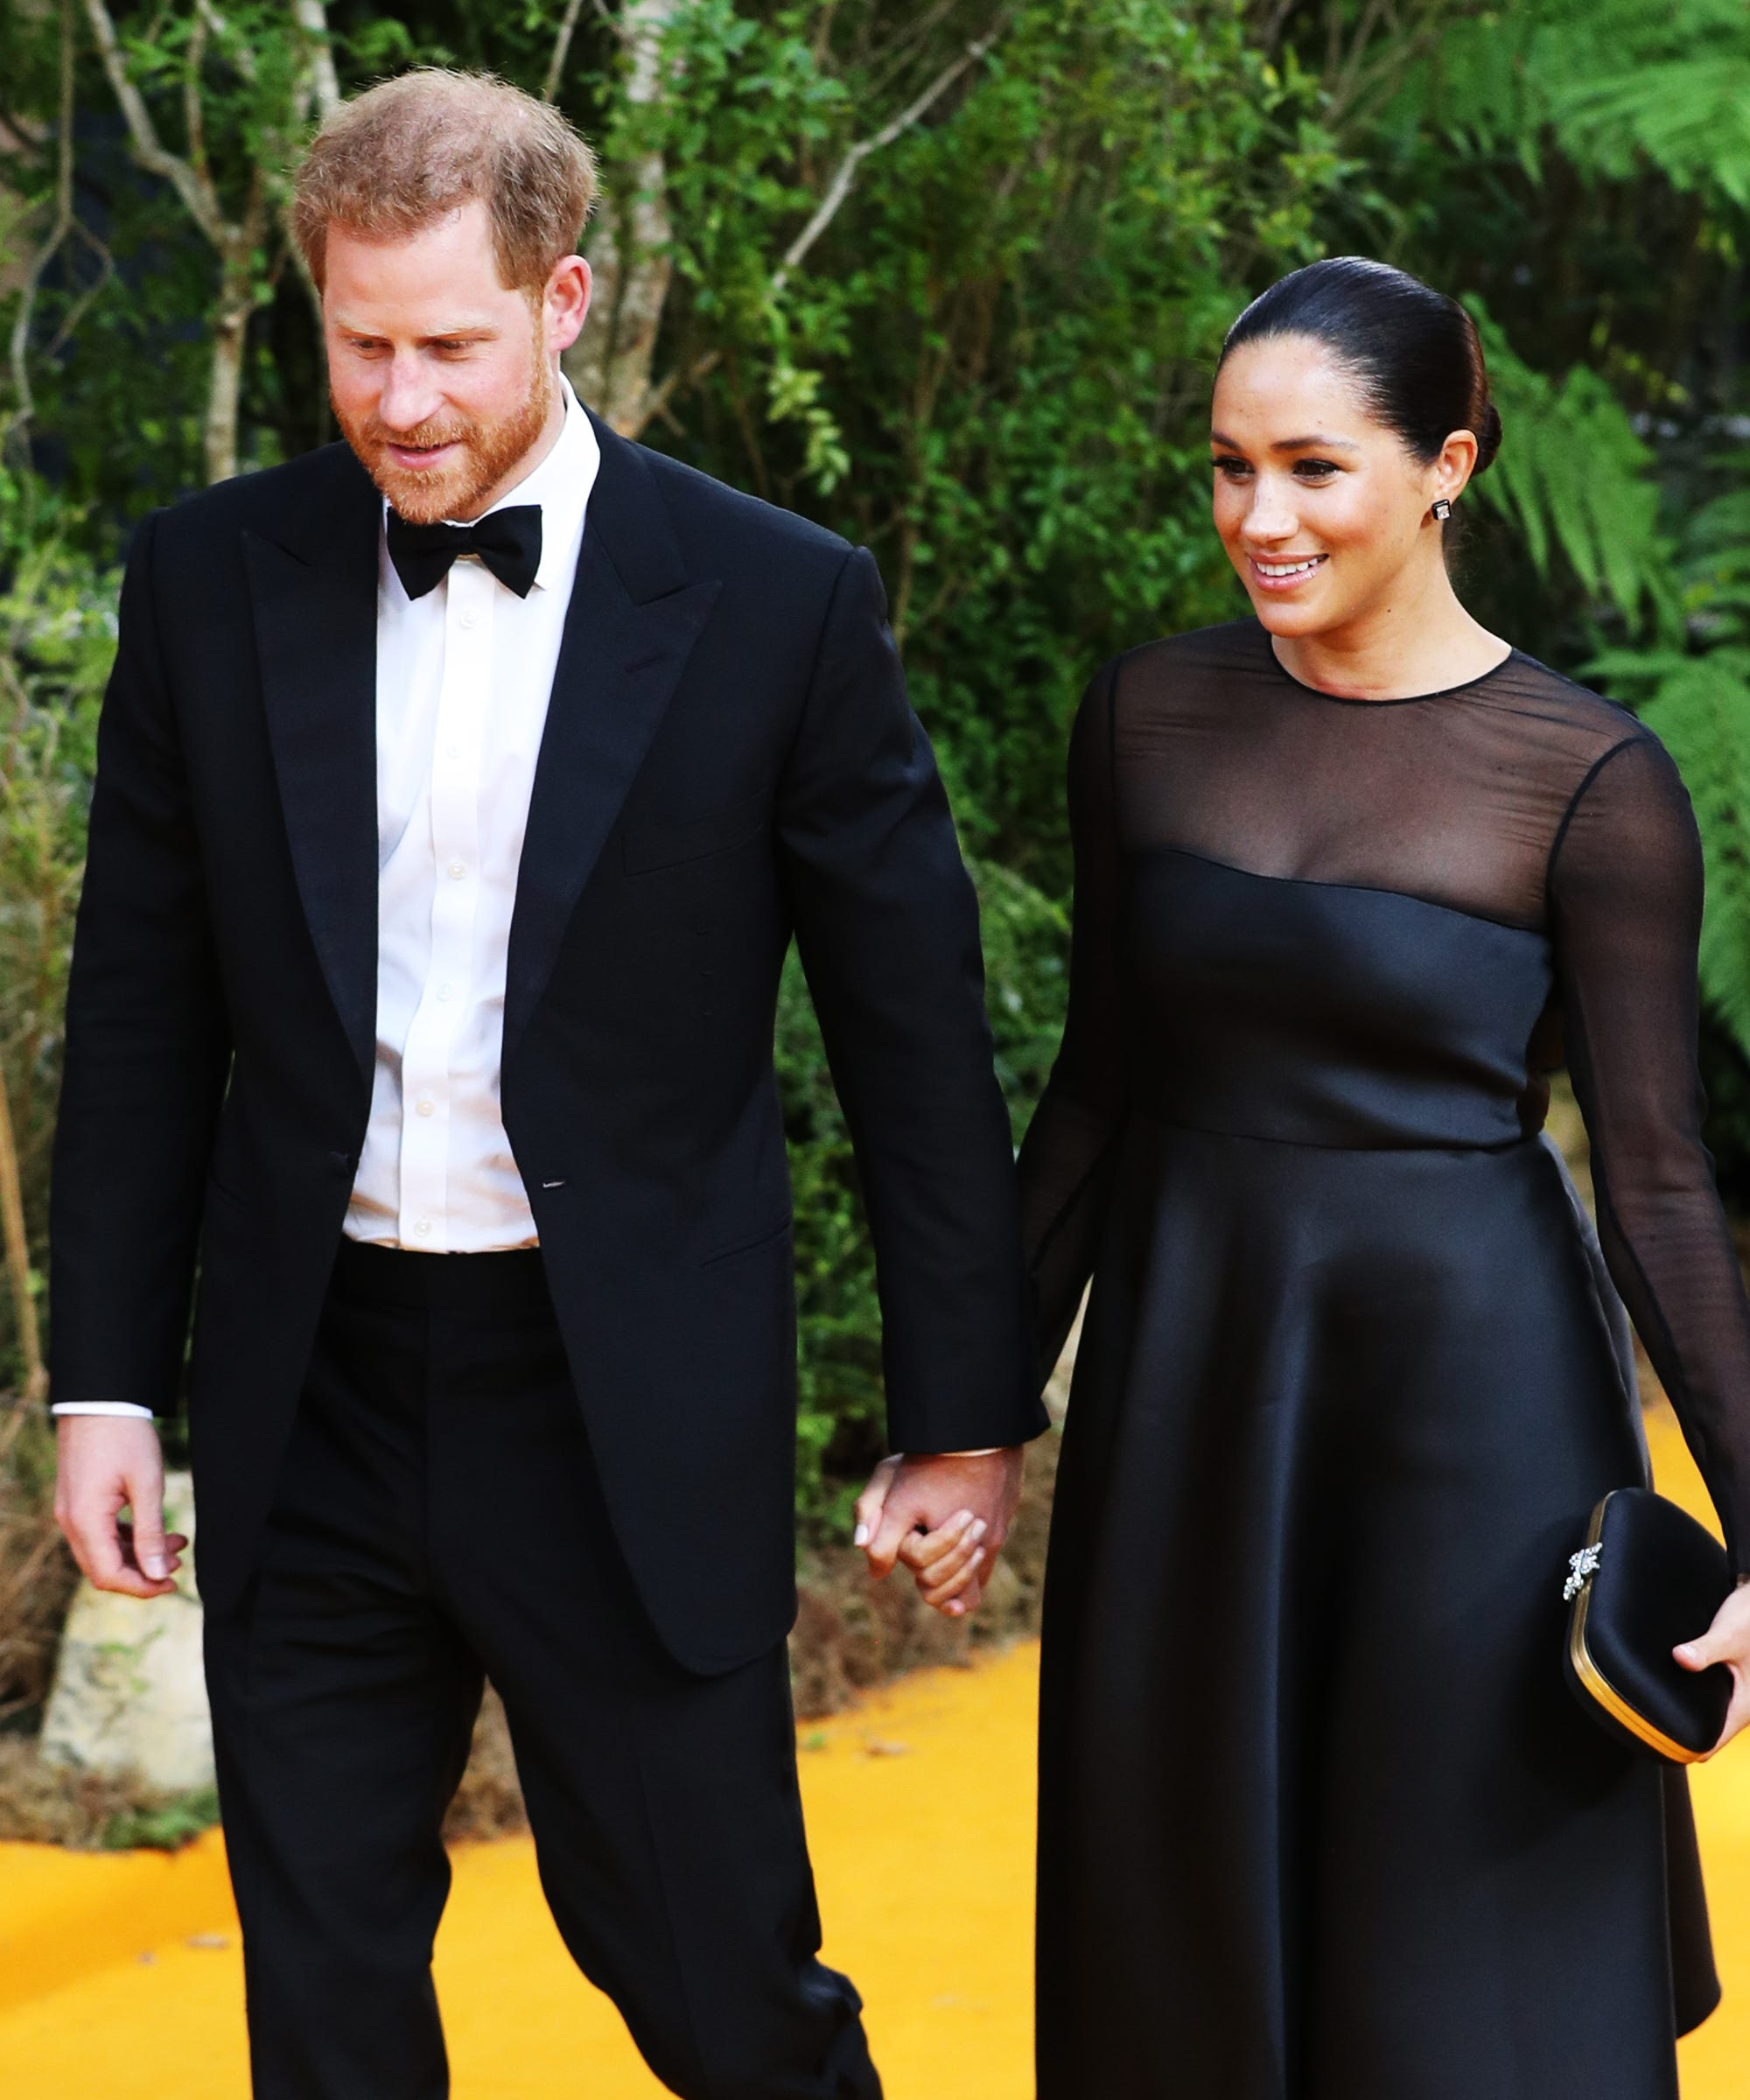 Meghan Markle Responds To Negative Press About Marriage